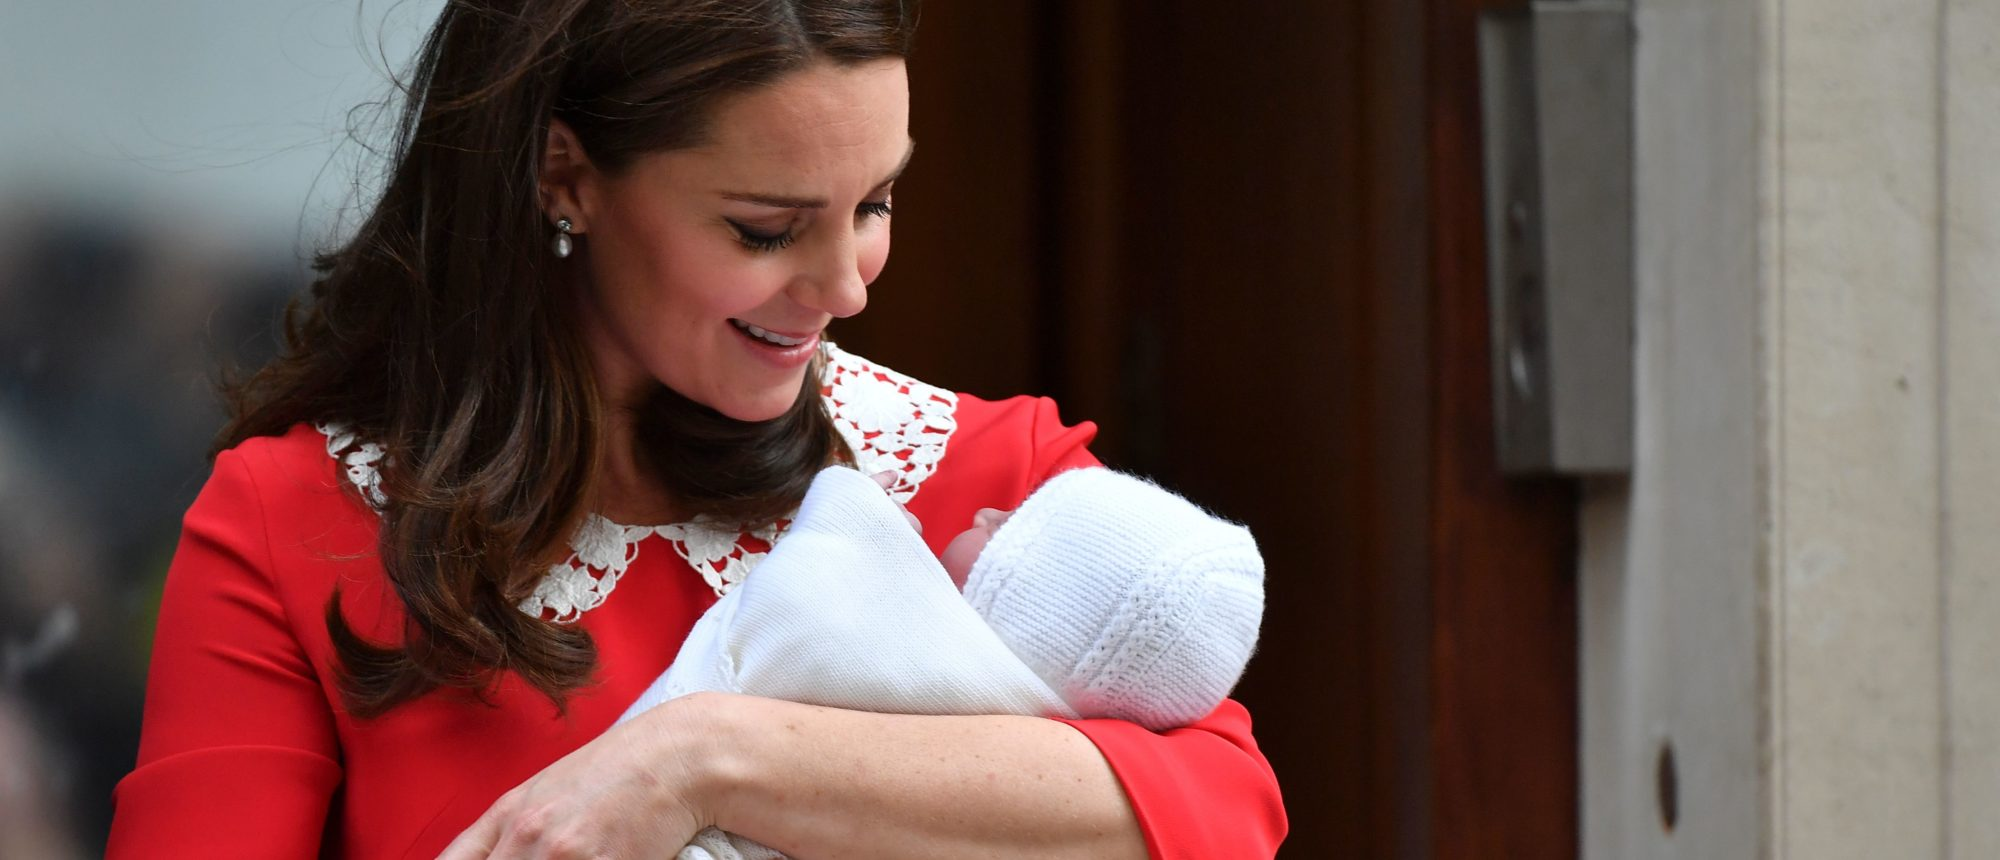 Britain's Catherine, Duchess of Cambridge looks at her newly-born son, her third child, on the steps of the Lindo Wing at St Mary's Hospital in central London, on April 23, 2018. (Photo: BEN STANSALL/AFP/Getty Images)